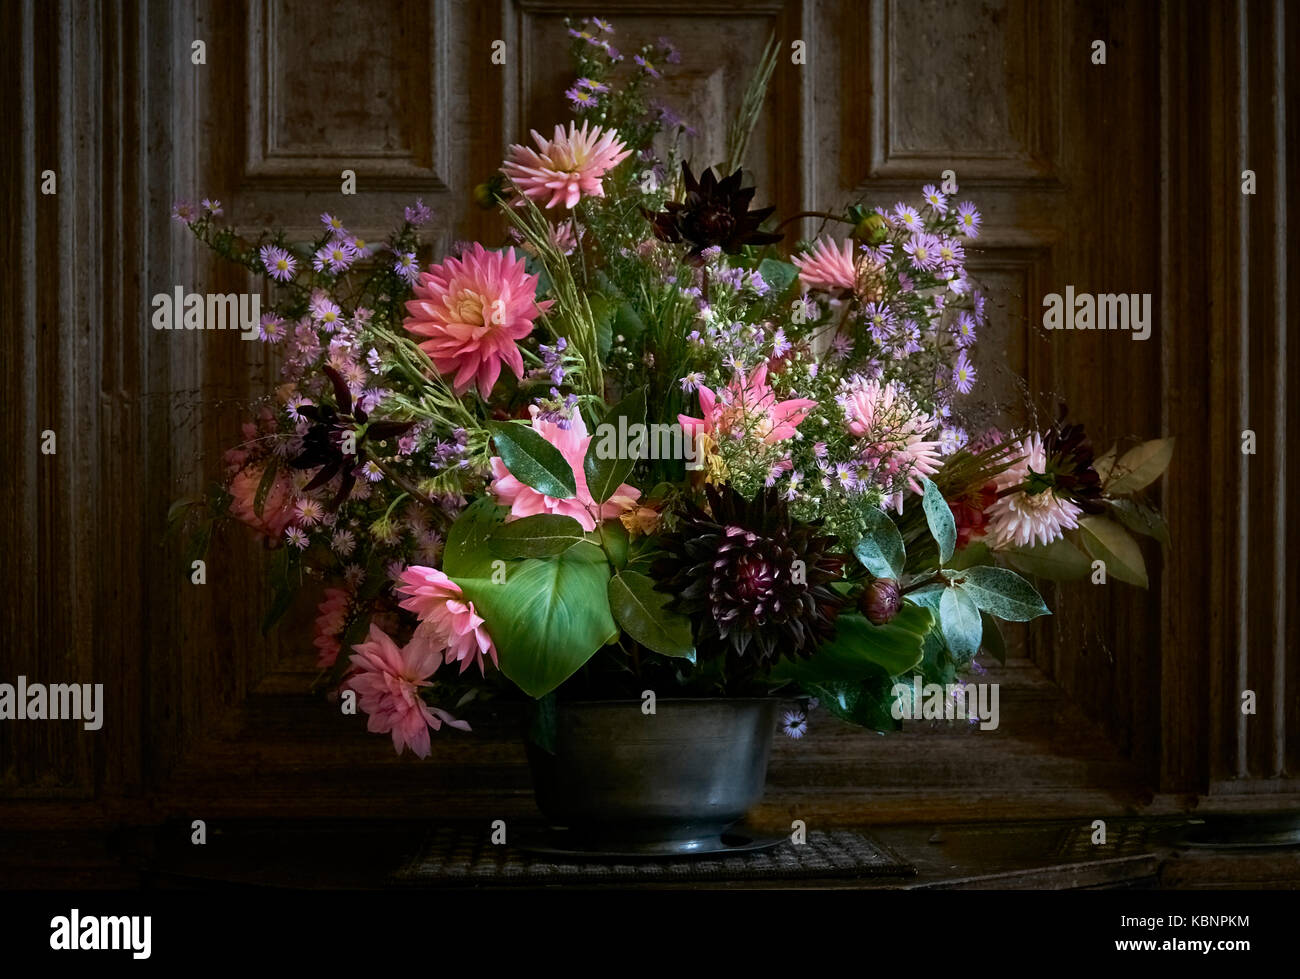 Autumn Flower Arrangement In A Rustic Pewter Vase Indoors Front Of Oak Panelling